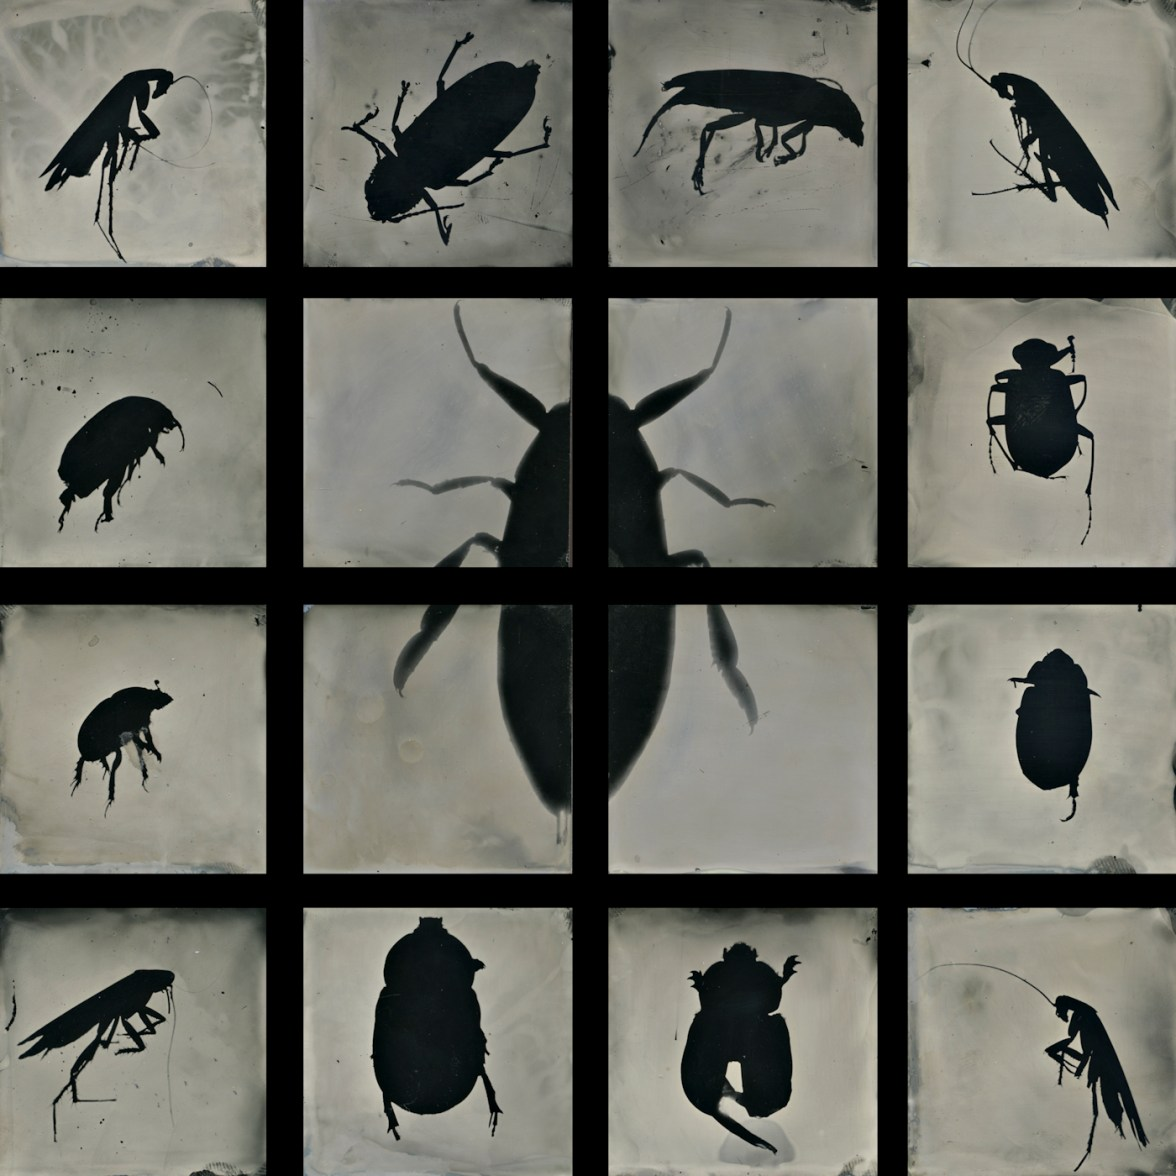 Insectare Bugged ©S. Gayle Stevens